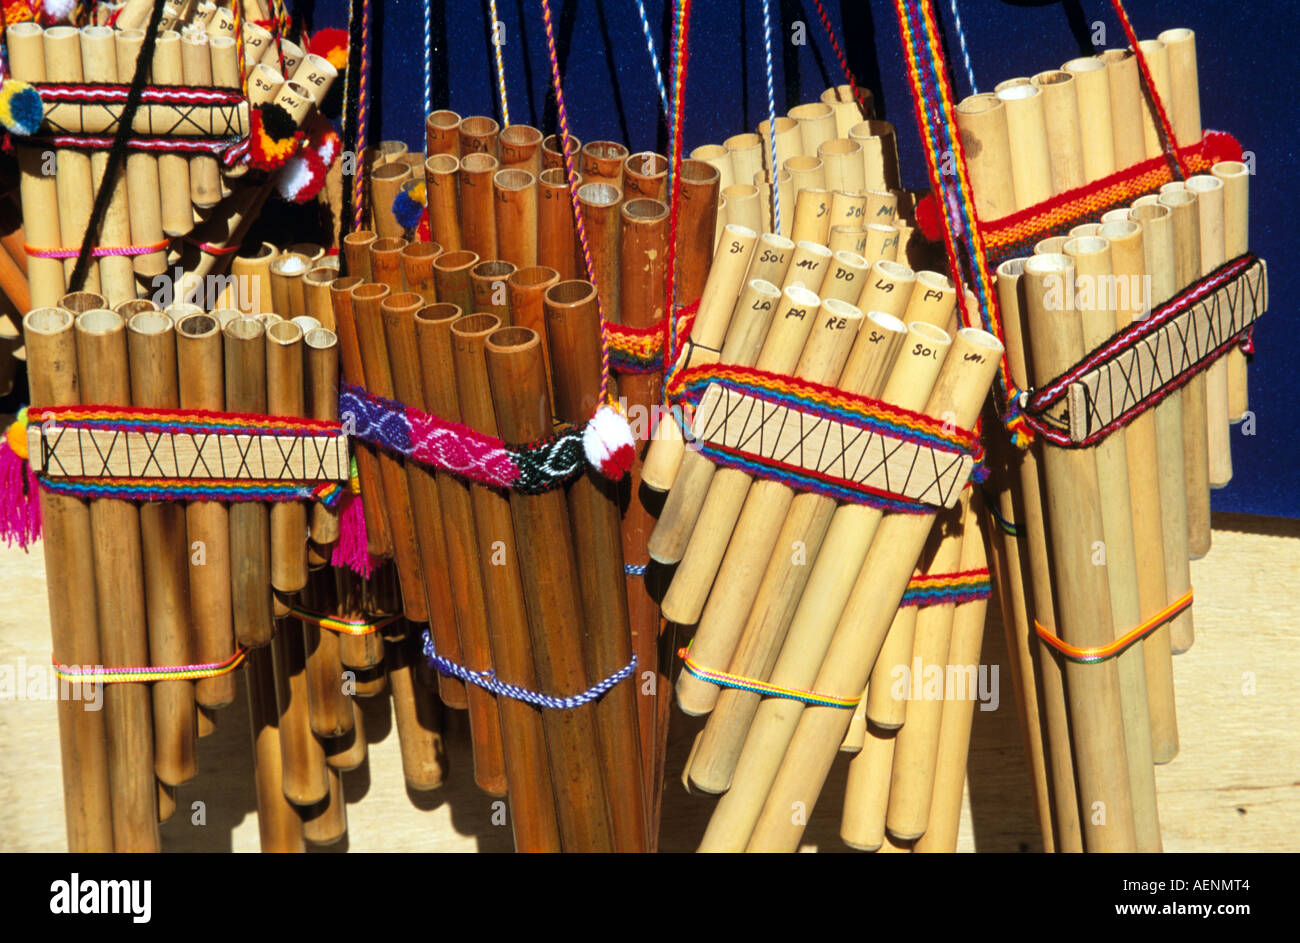 Display of panpipes on stall in market, Aguas Calientes, near Machu Picchu, Peru - Stock Image